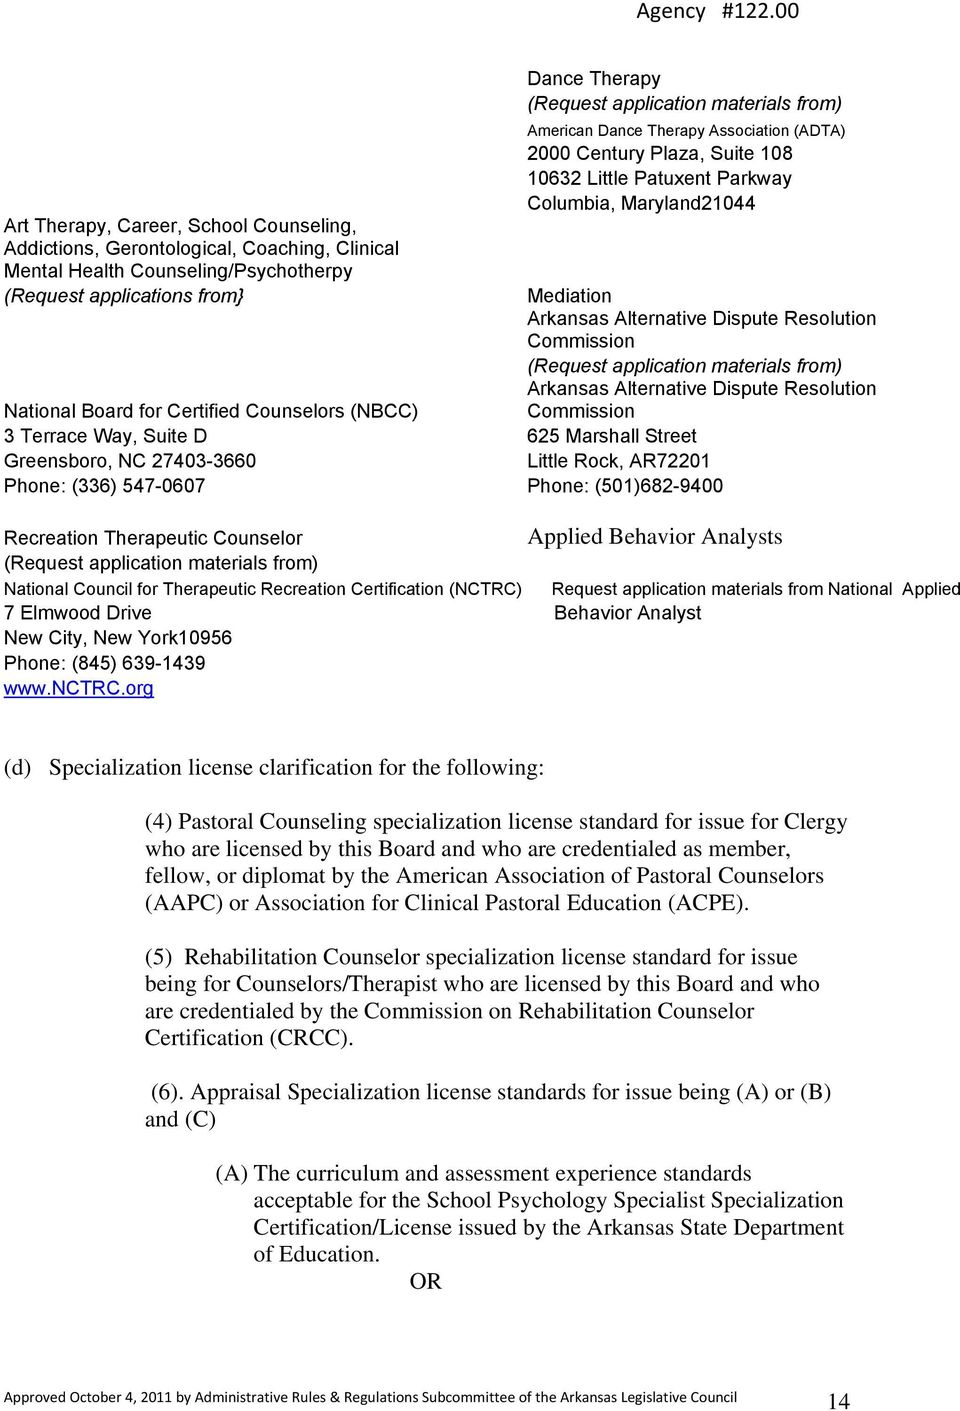 (Request application materials from) Arkansas Alternative Dispute Resolution Commission National Board for Certified Counselors (NBCC) 3 Terrace Way, Suite D 625 Marshall Street Greensboro, NC